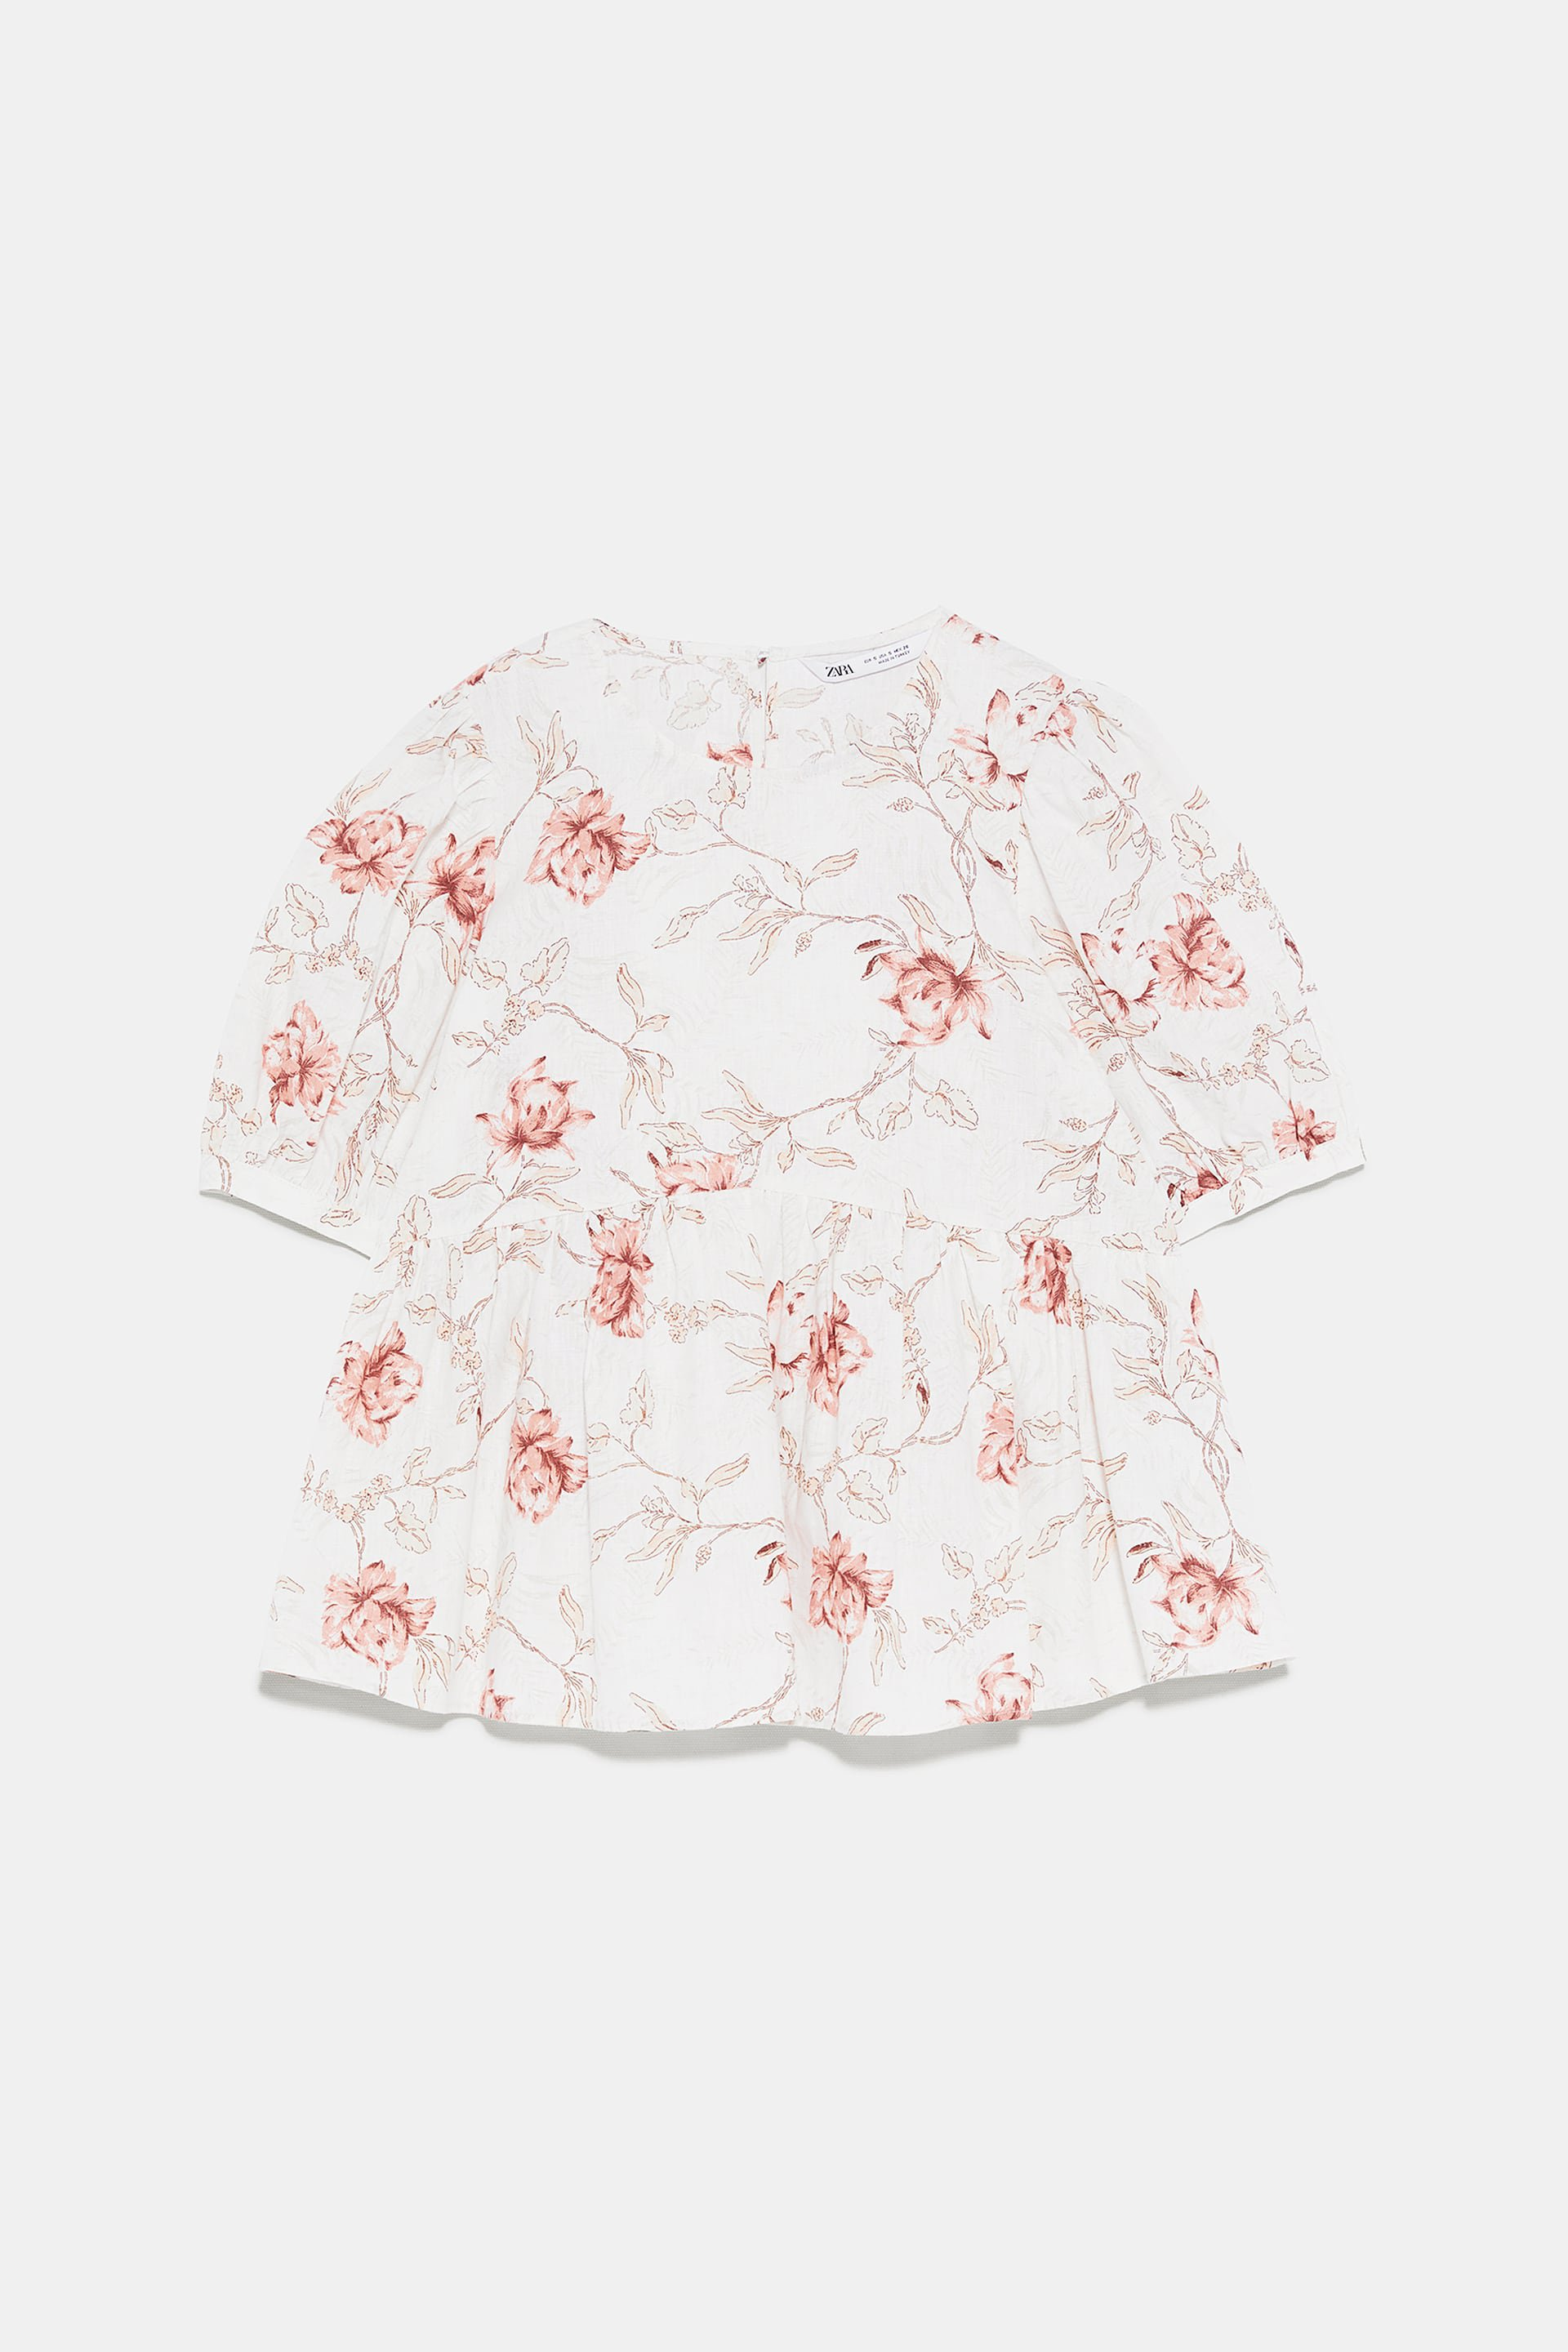 FLORAL PRINTED TOP - View All-SHIRTS | BLOUSES-WOMAN | ZARA Canada